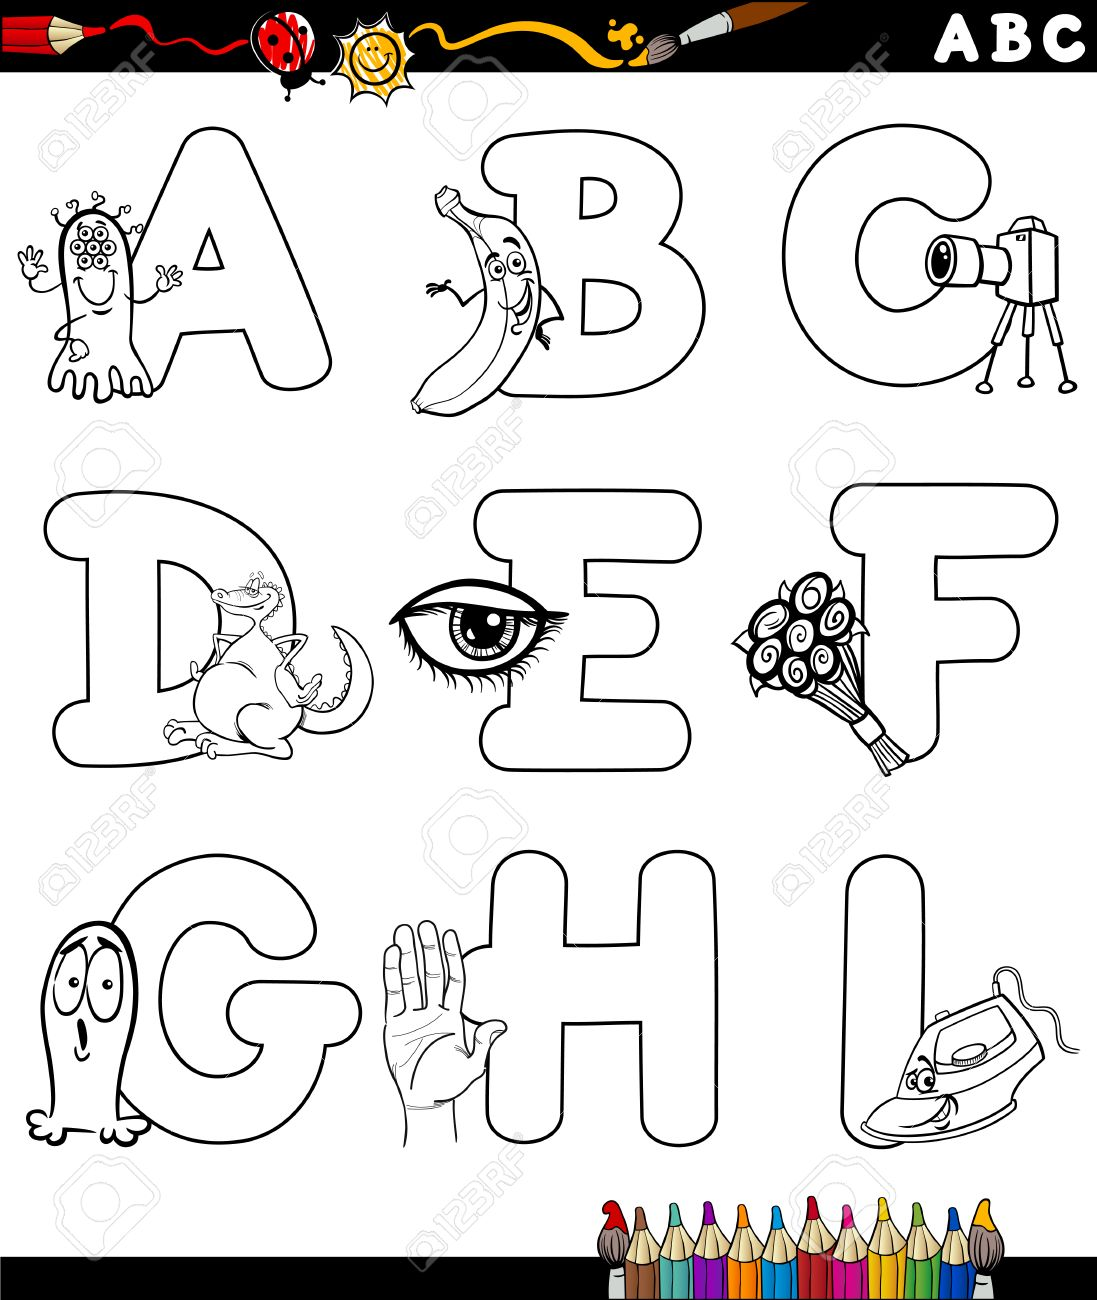 Black And White Cartoon Illustration Of Capital Letters Alphabet With Objects For Children Education From A